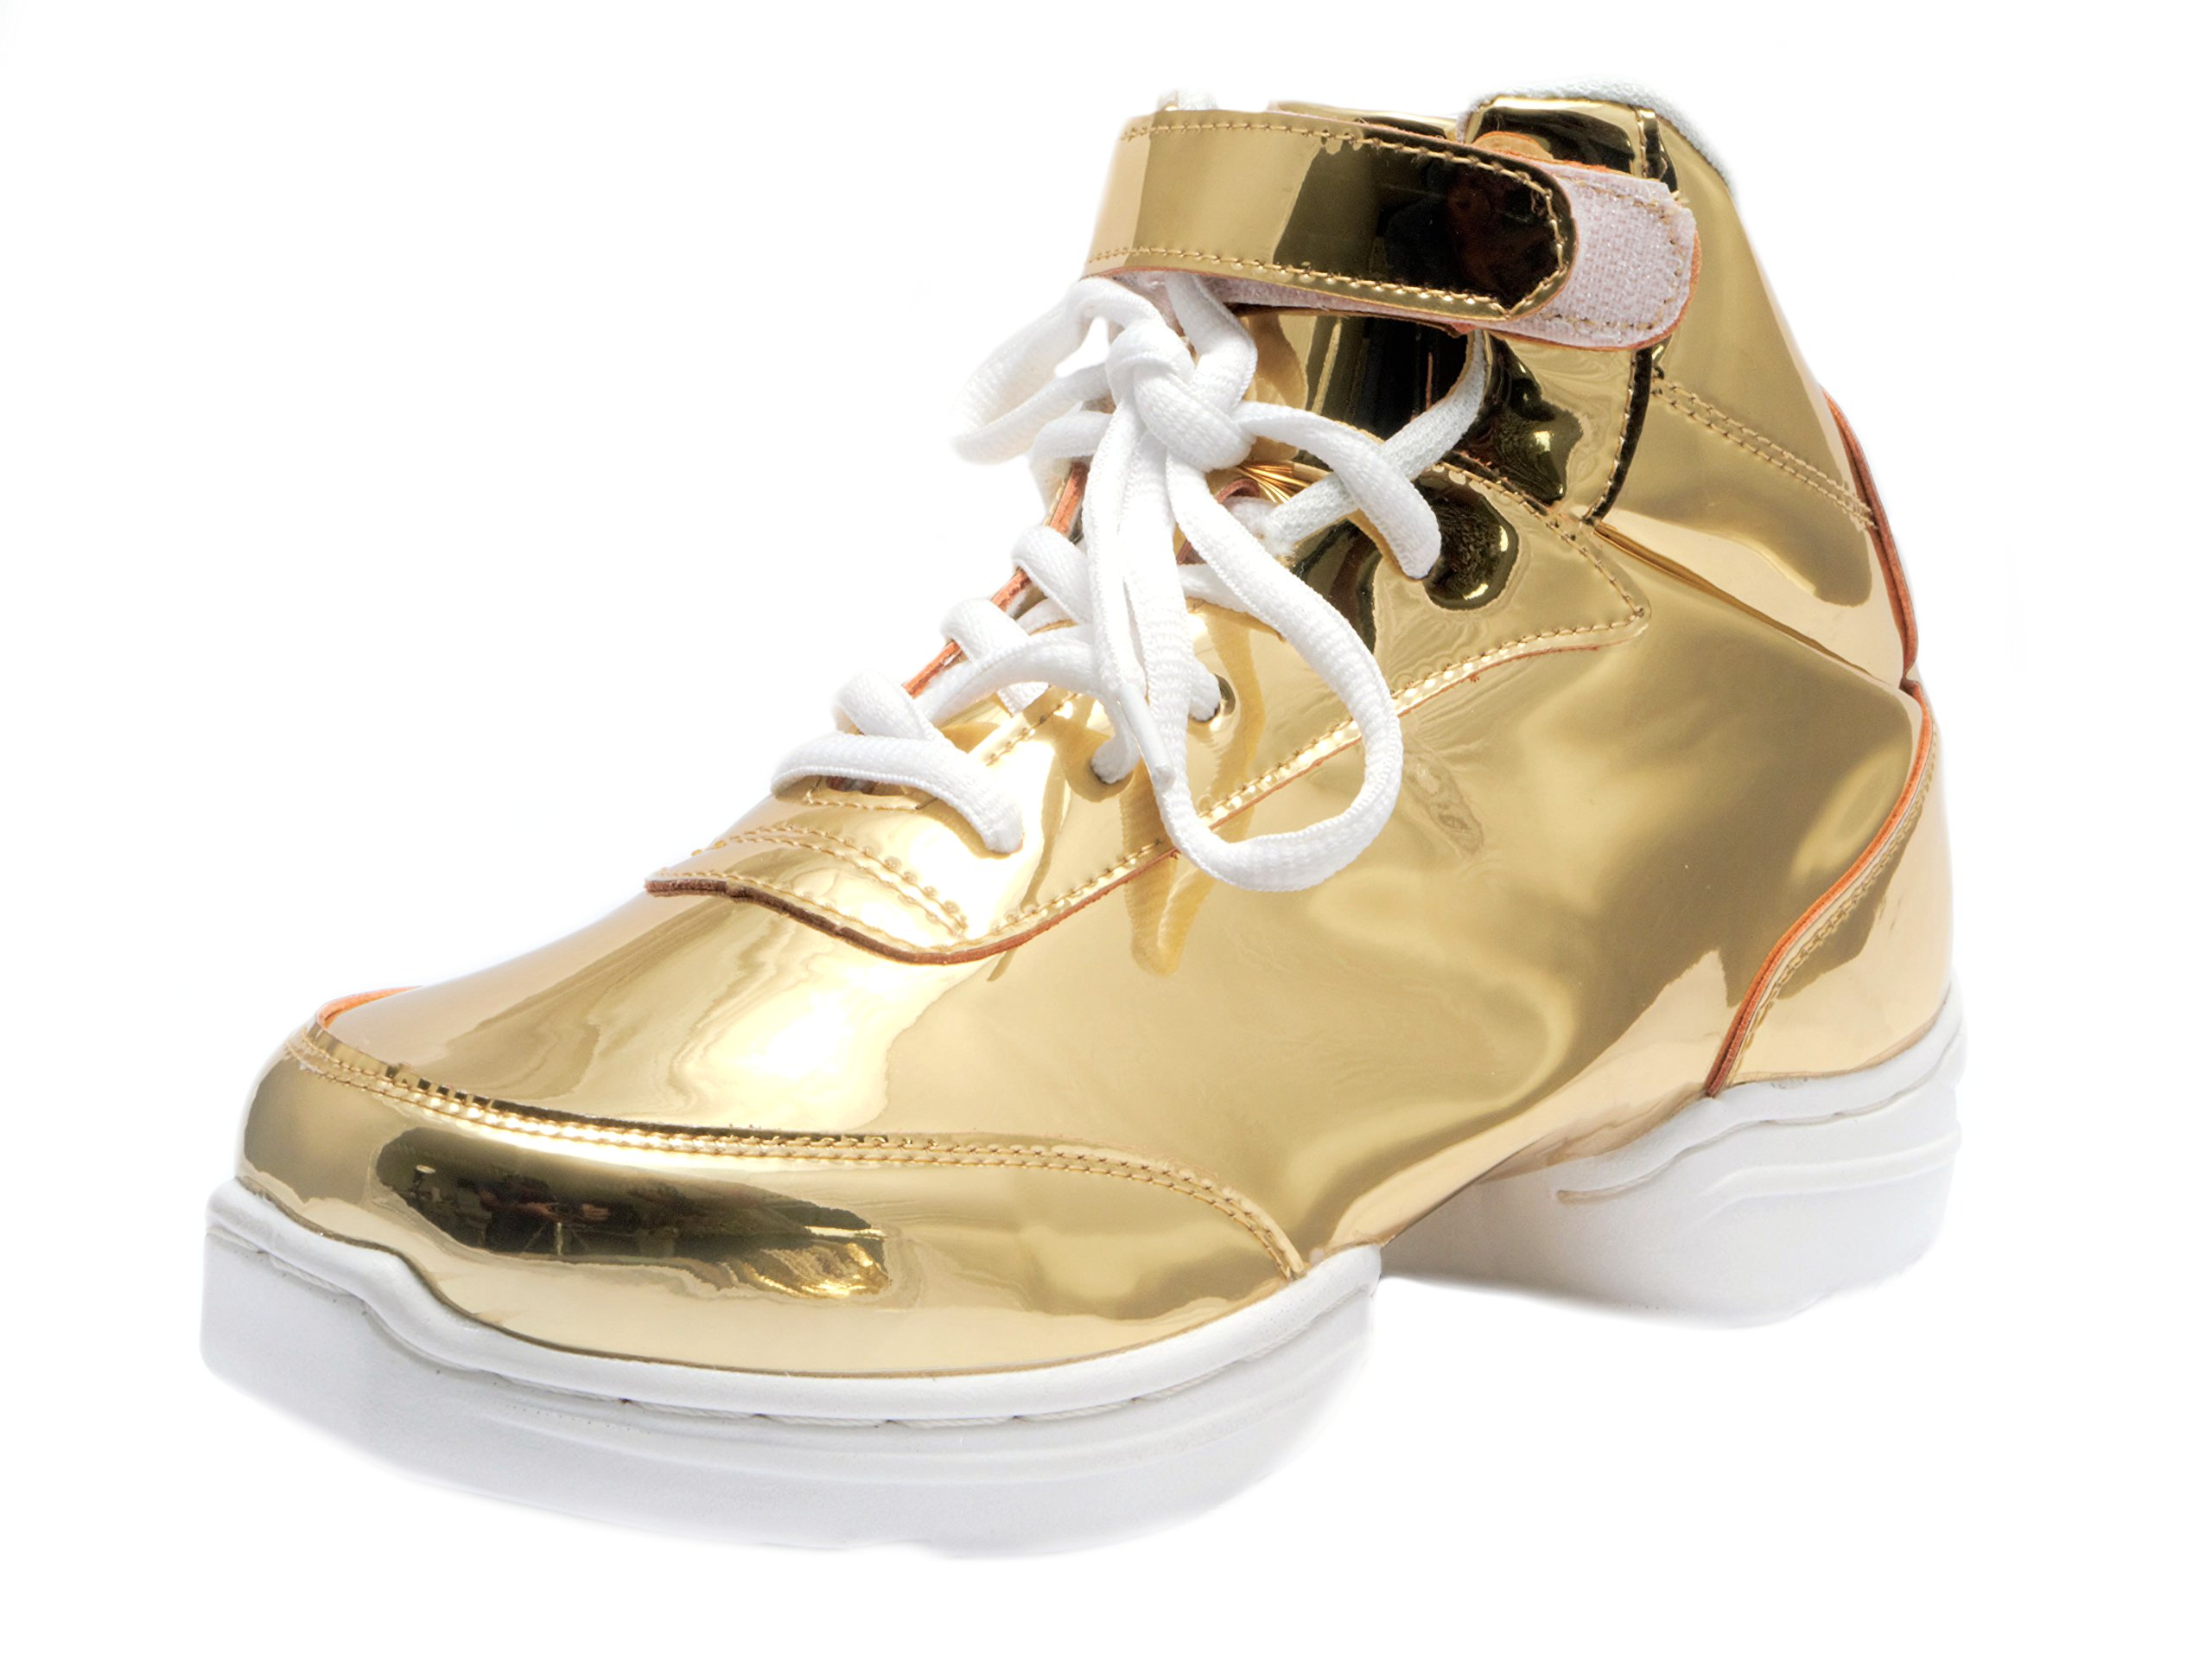 Nene's Collection Gold Women's Dance Fitness Shoes High Top Sneakers (6.5) by Nene's Collection (Image #1)